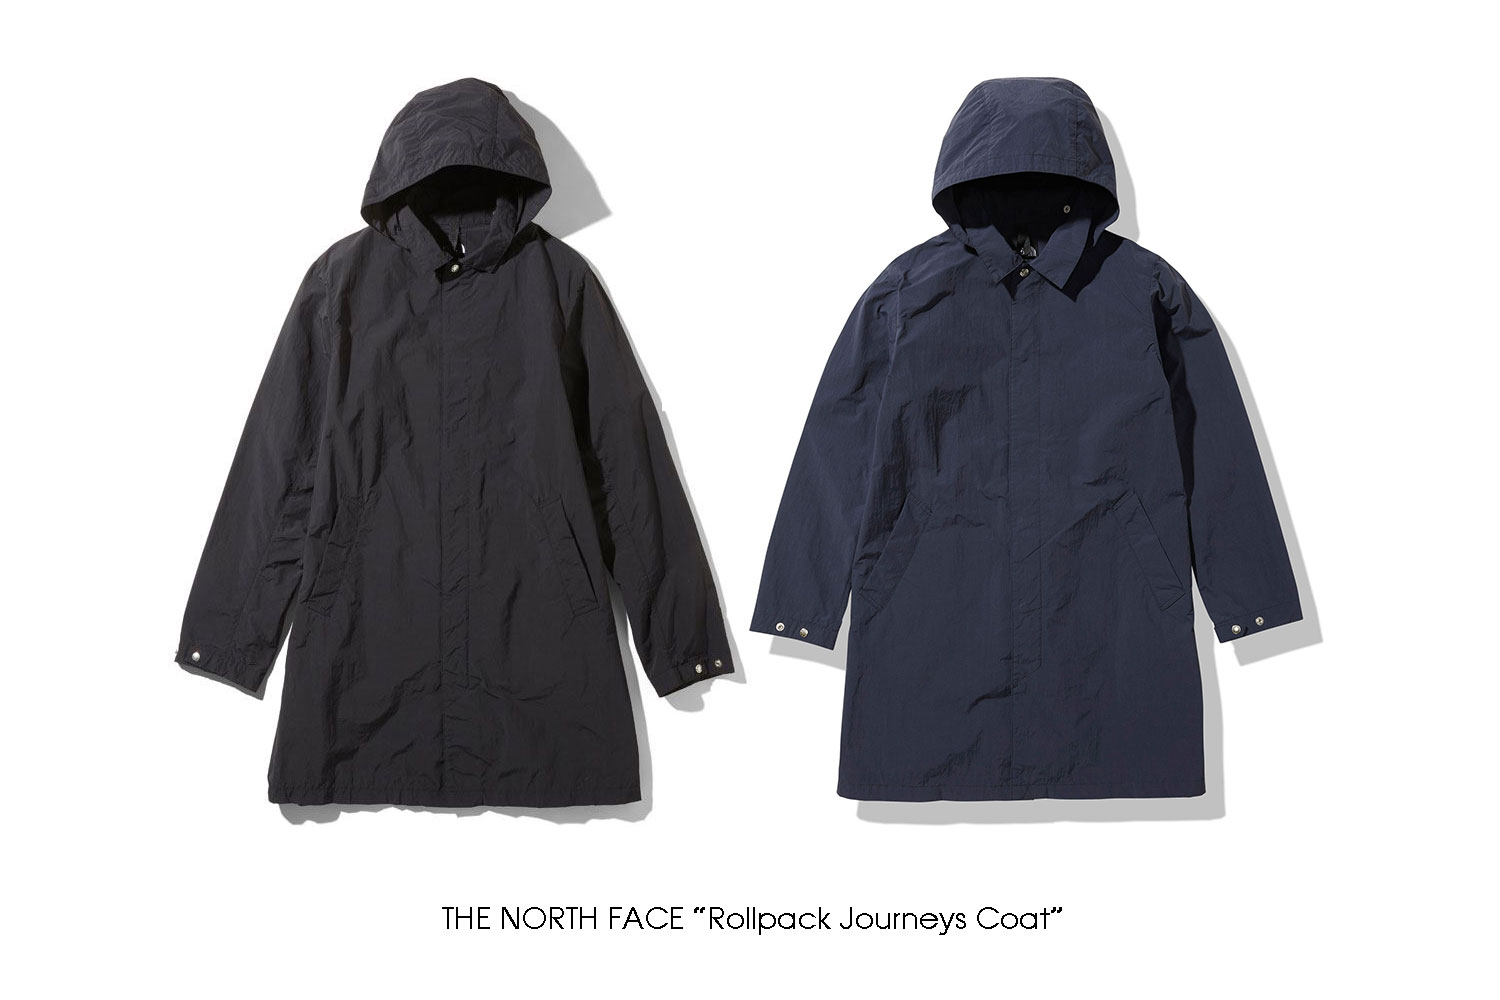 """THE NORTH FACE """"Rollpack Journeys Coat"""""""